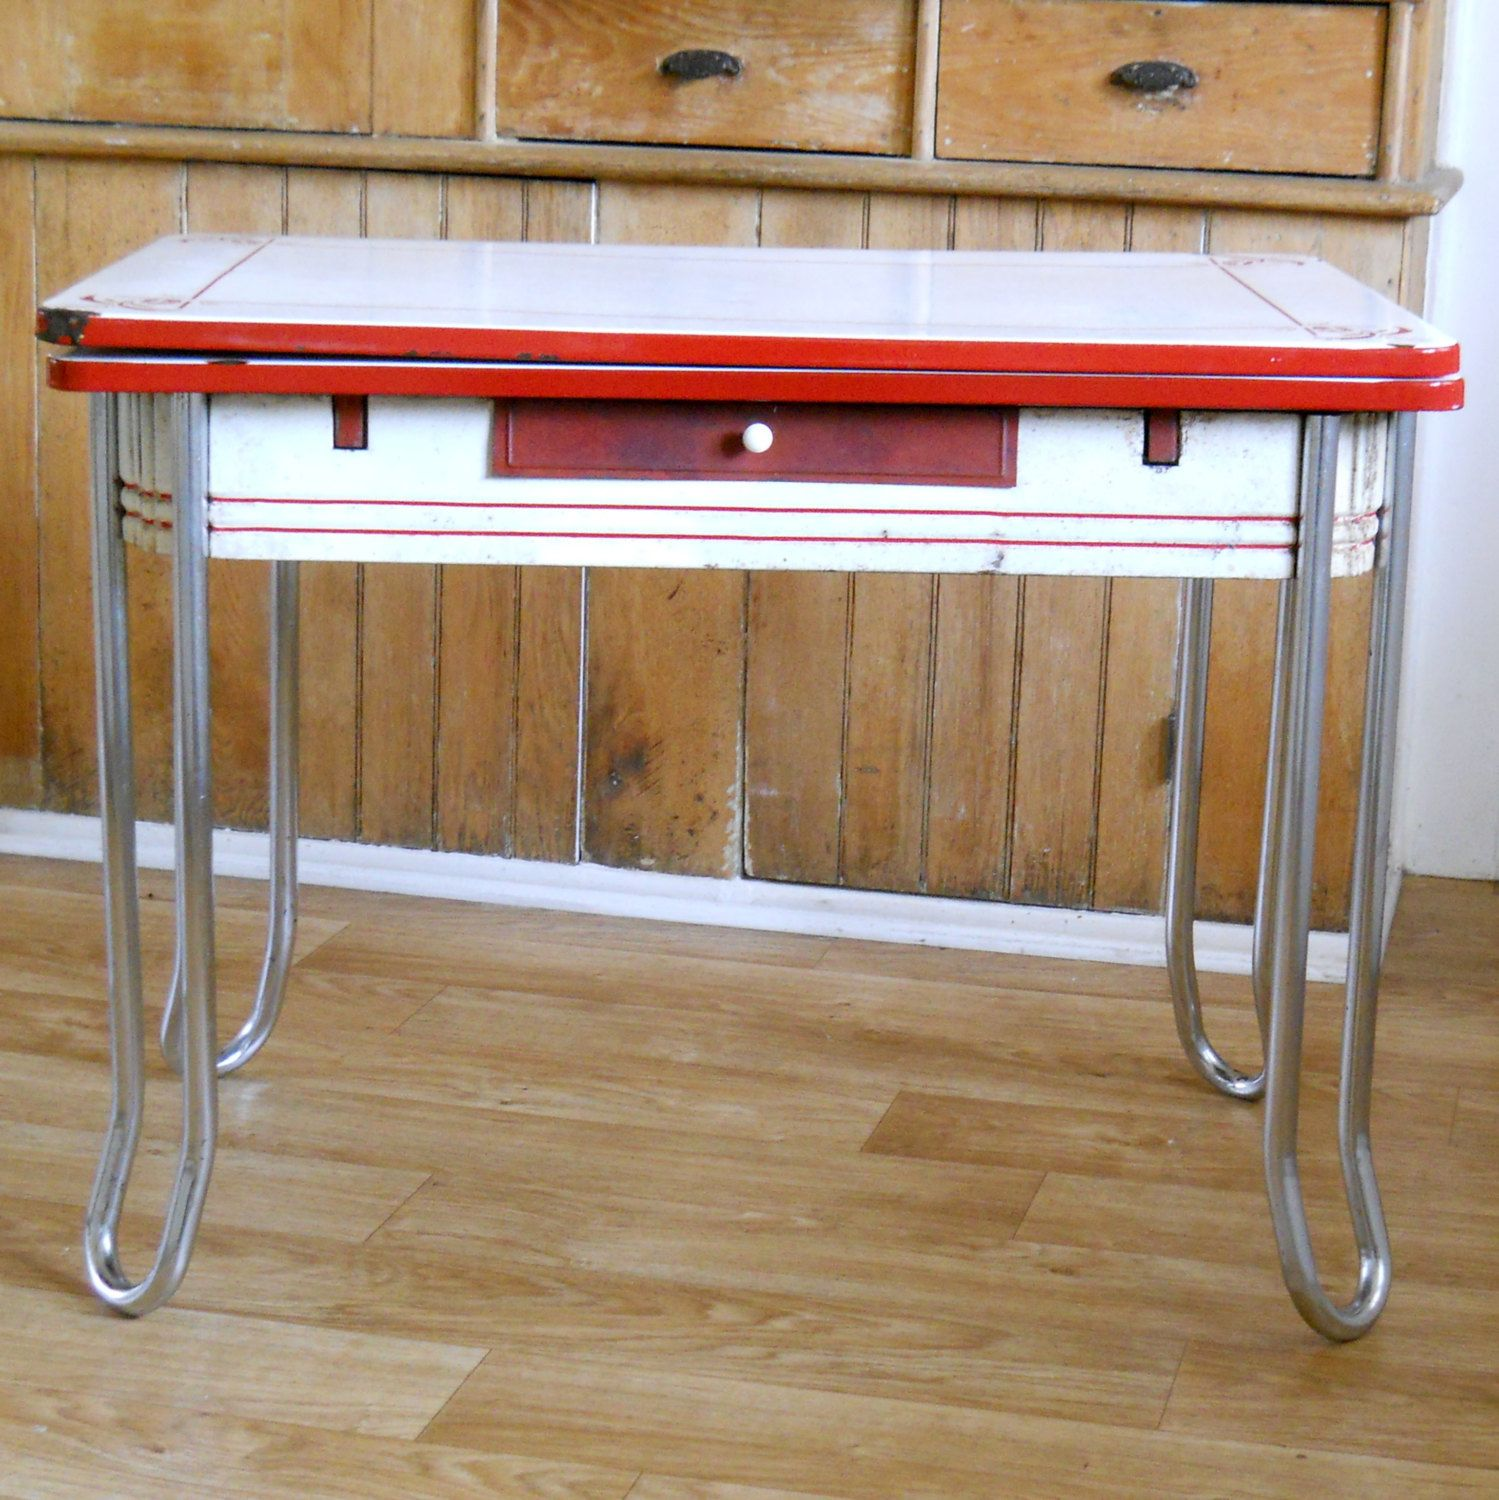 Vintage enamel top table red and white metal chrome and enamel table kitchen table slide out - Retro chrome kitchen table ...